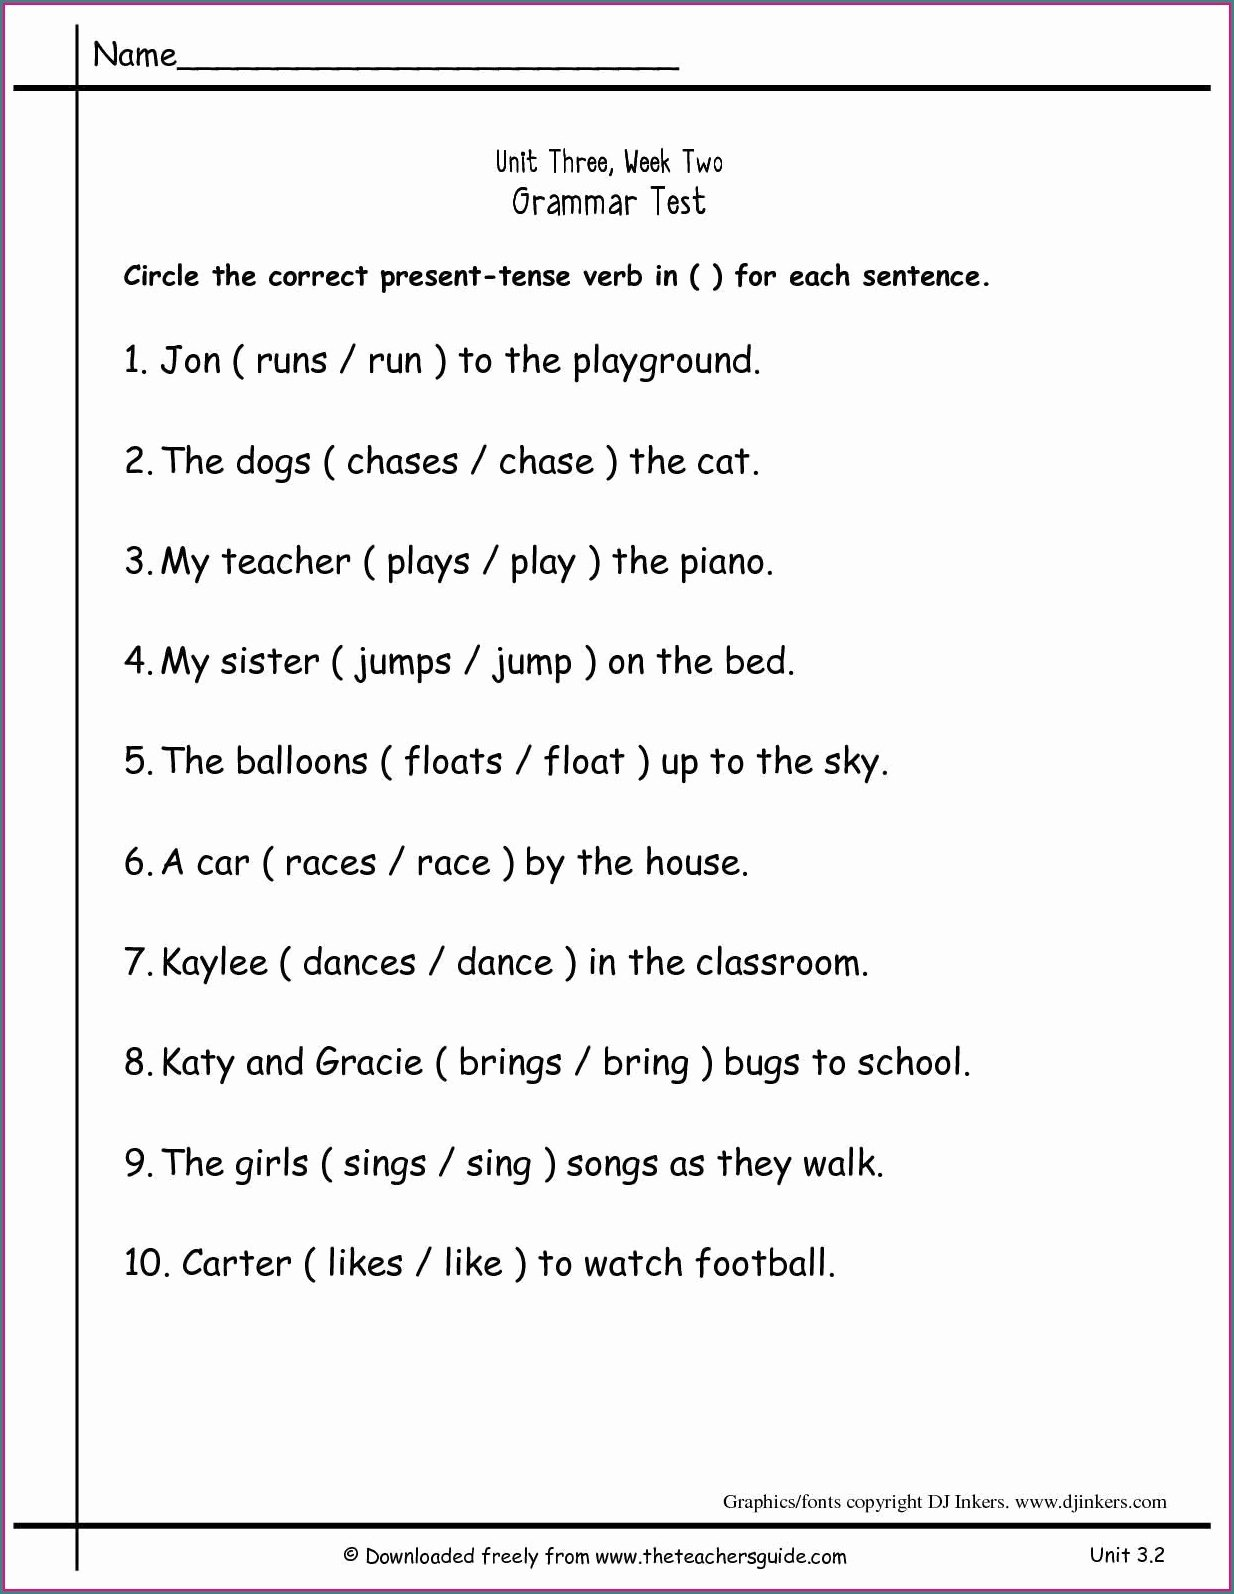 Grammar Worksheets for 2nd Grade Ideas Math Worksheet 2nd Grade Grammarets Second Printable Free